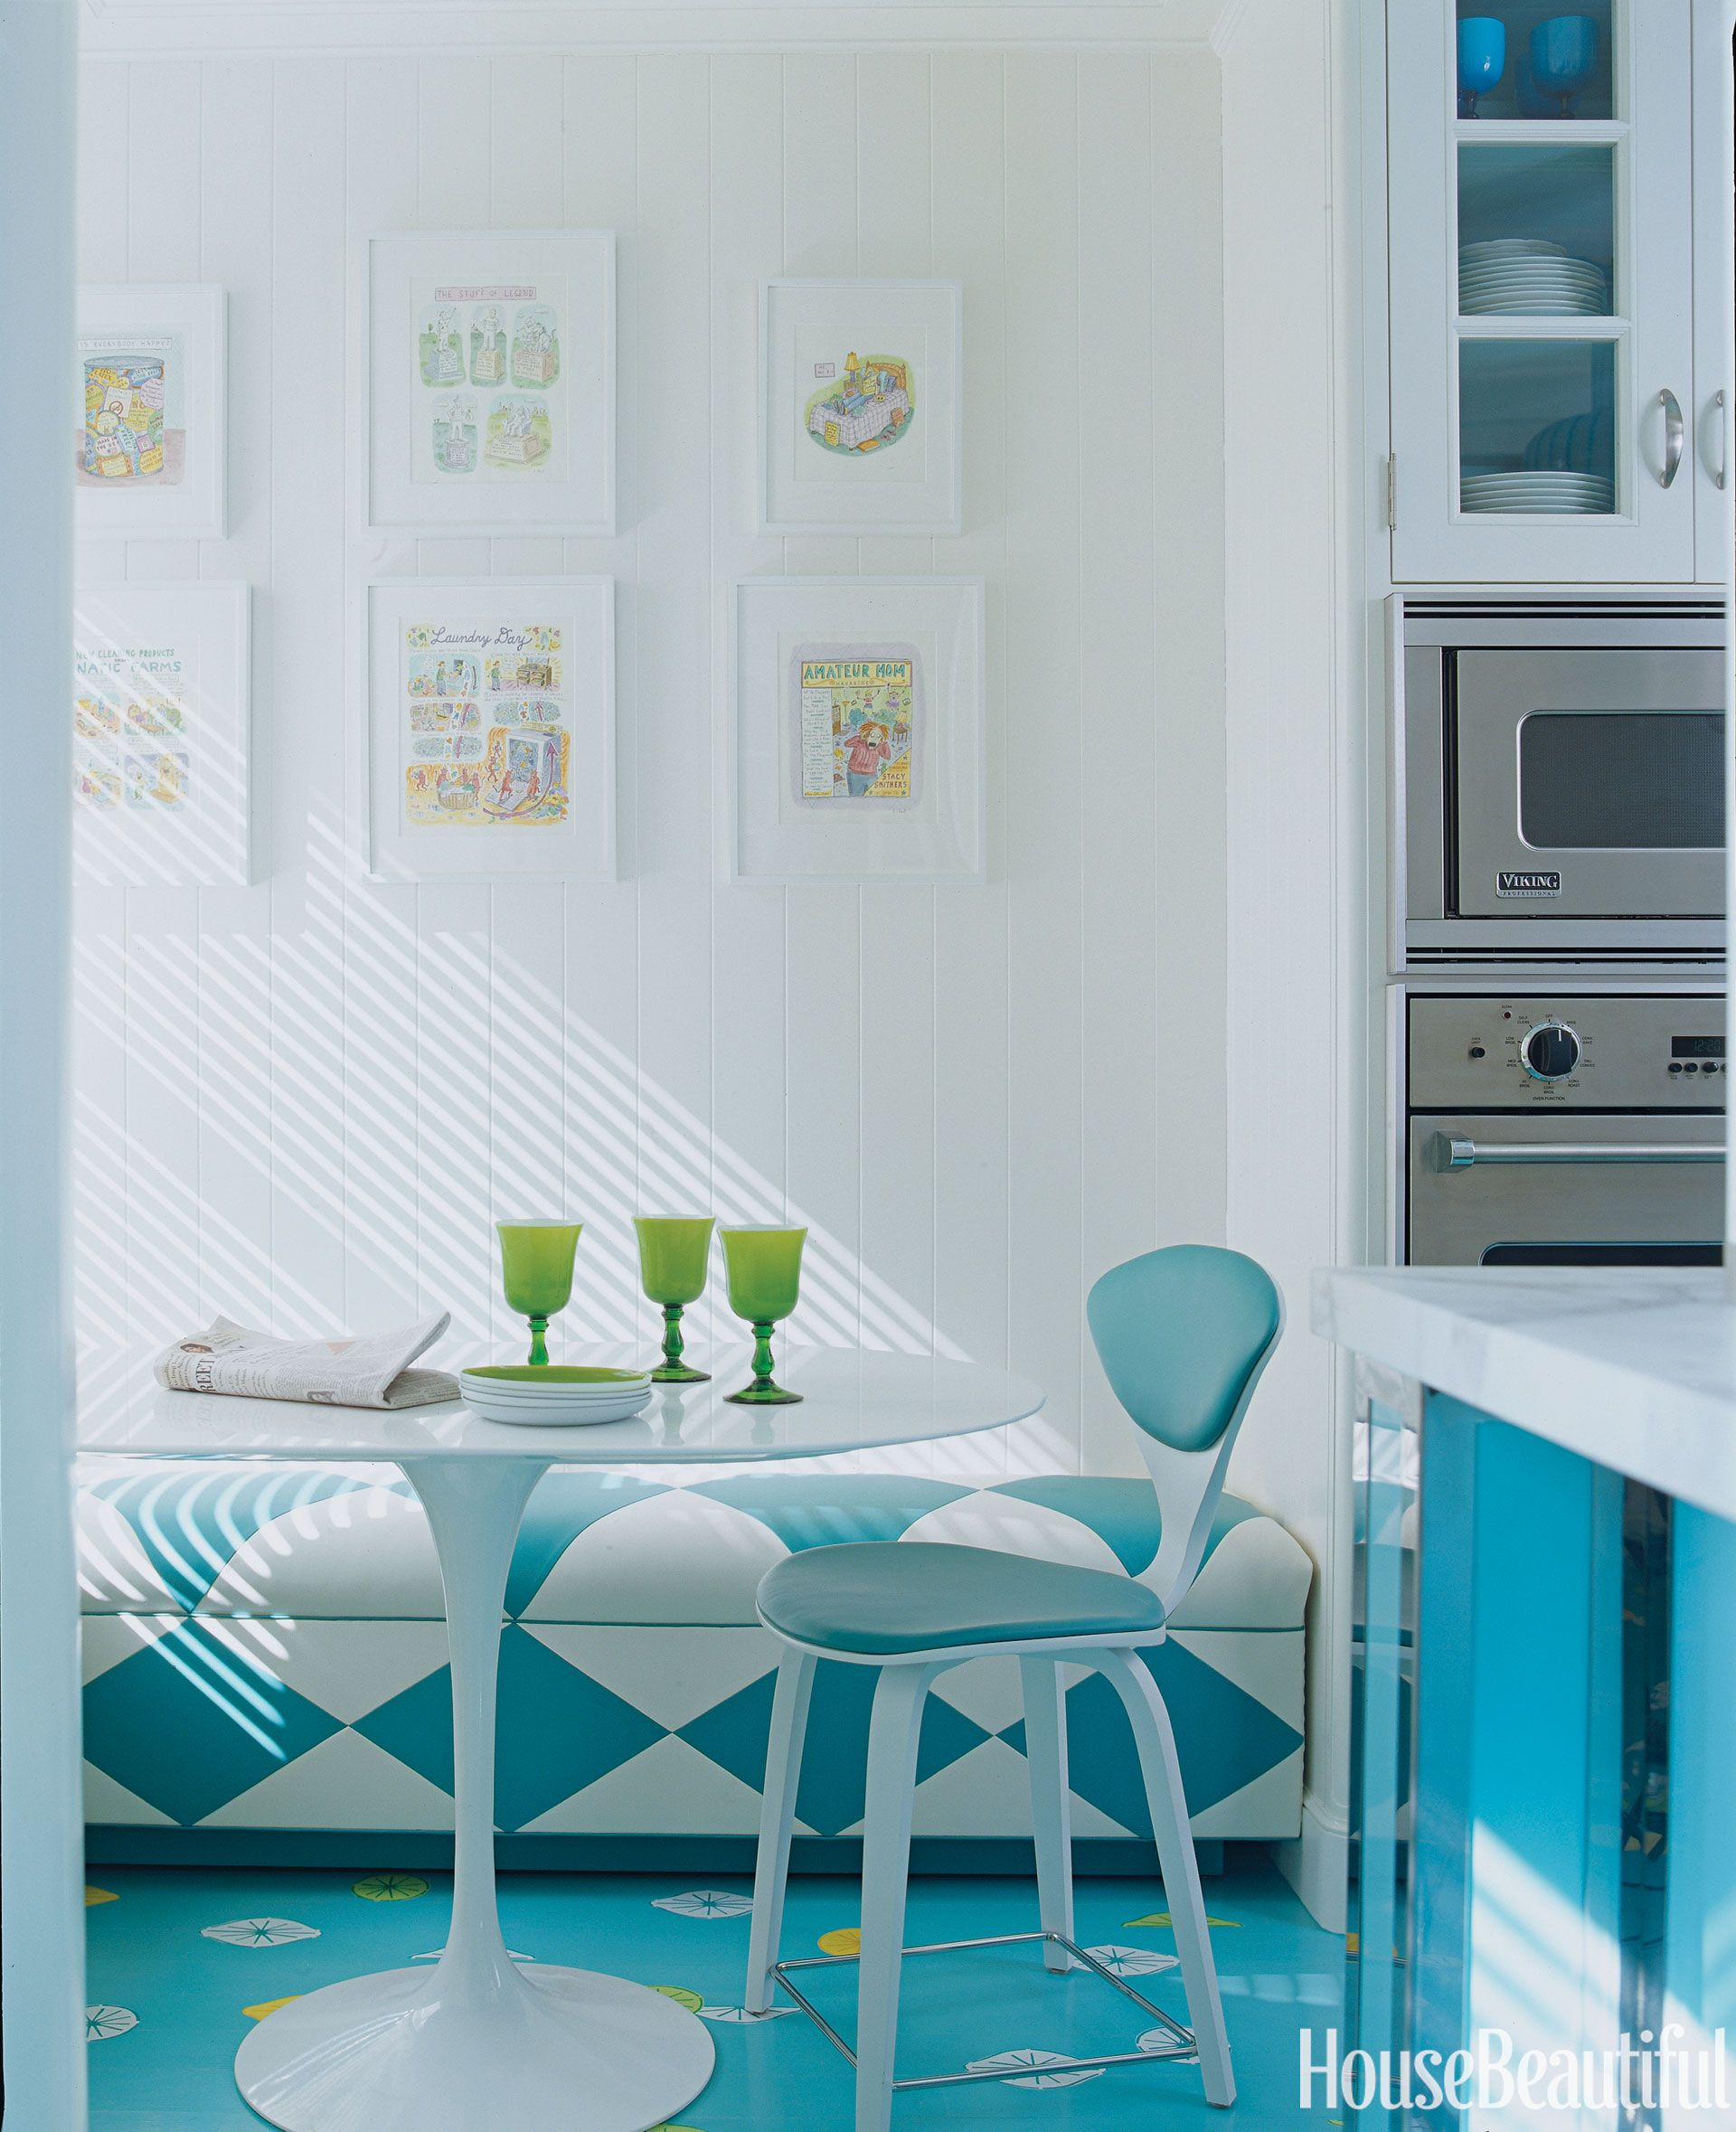 Cool Painted Floors - Chevron and Checkerboard Floor Color